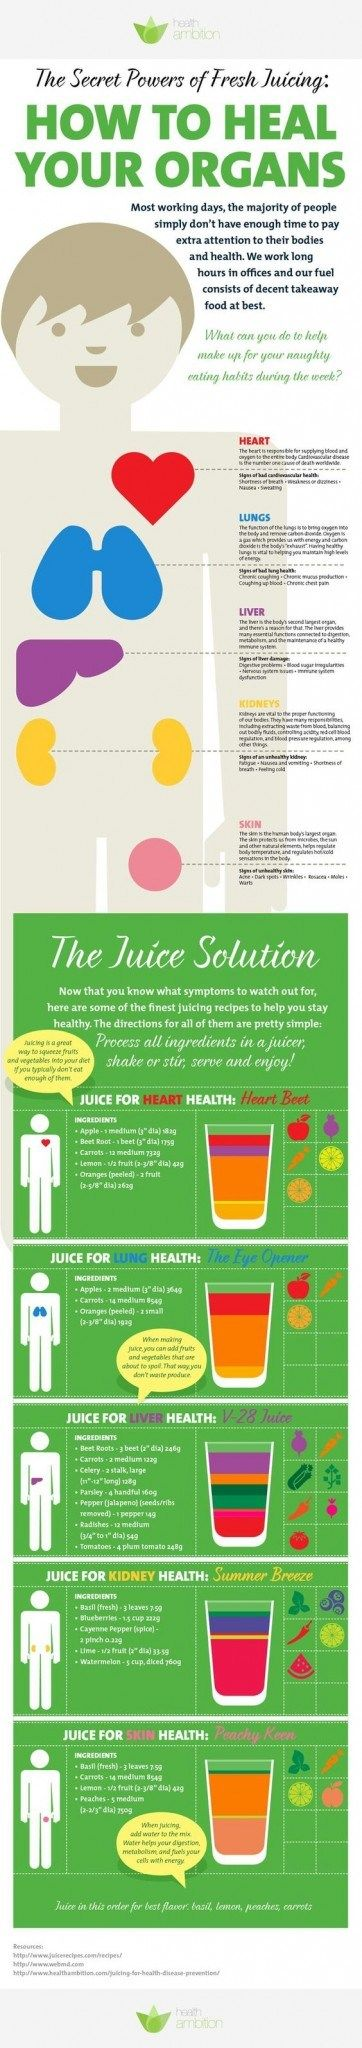 Juicing can have a remarkable effect on your skin's appearance. Here's how raw juices work from the inside to achieve smooth, beautiful skin.